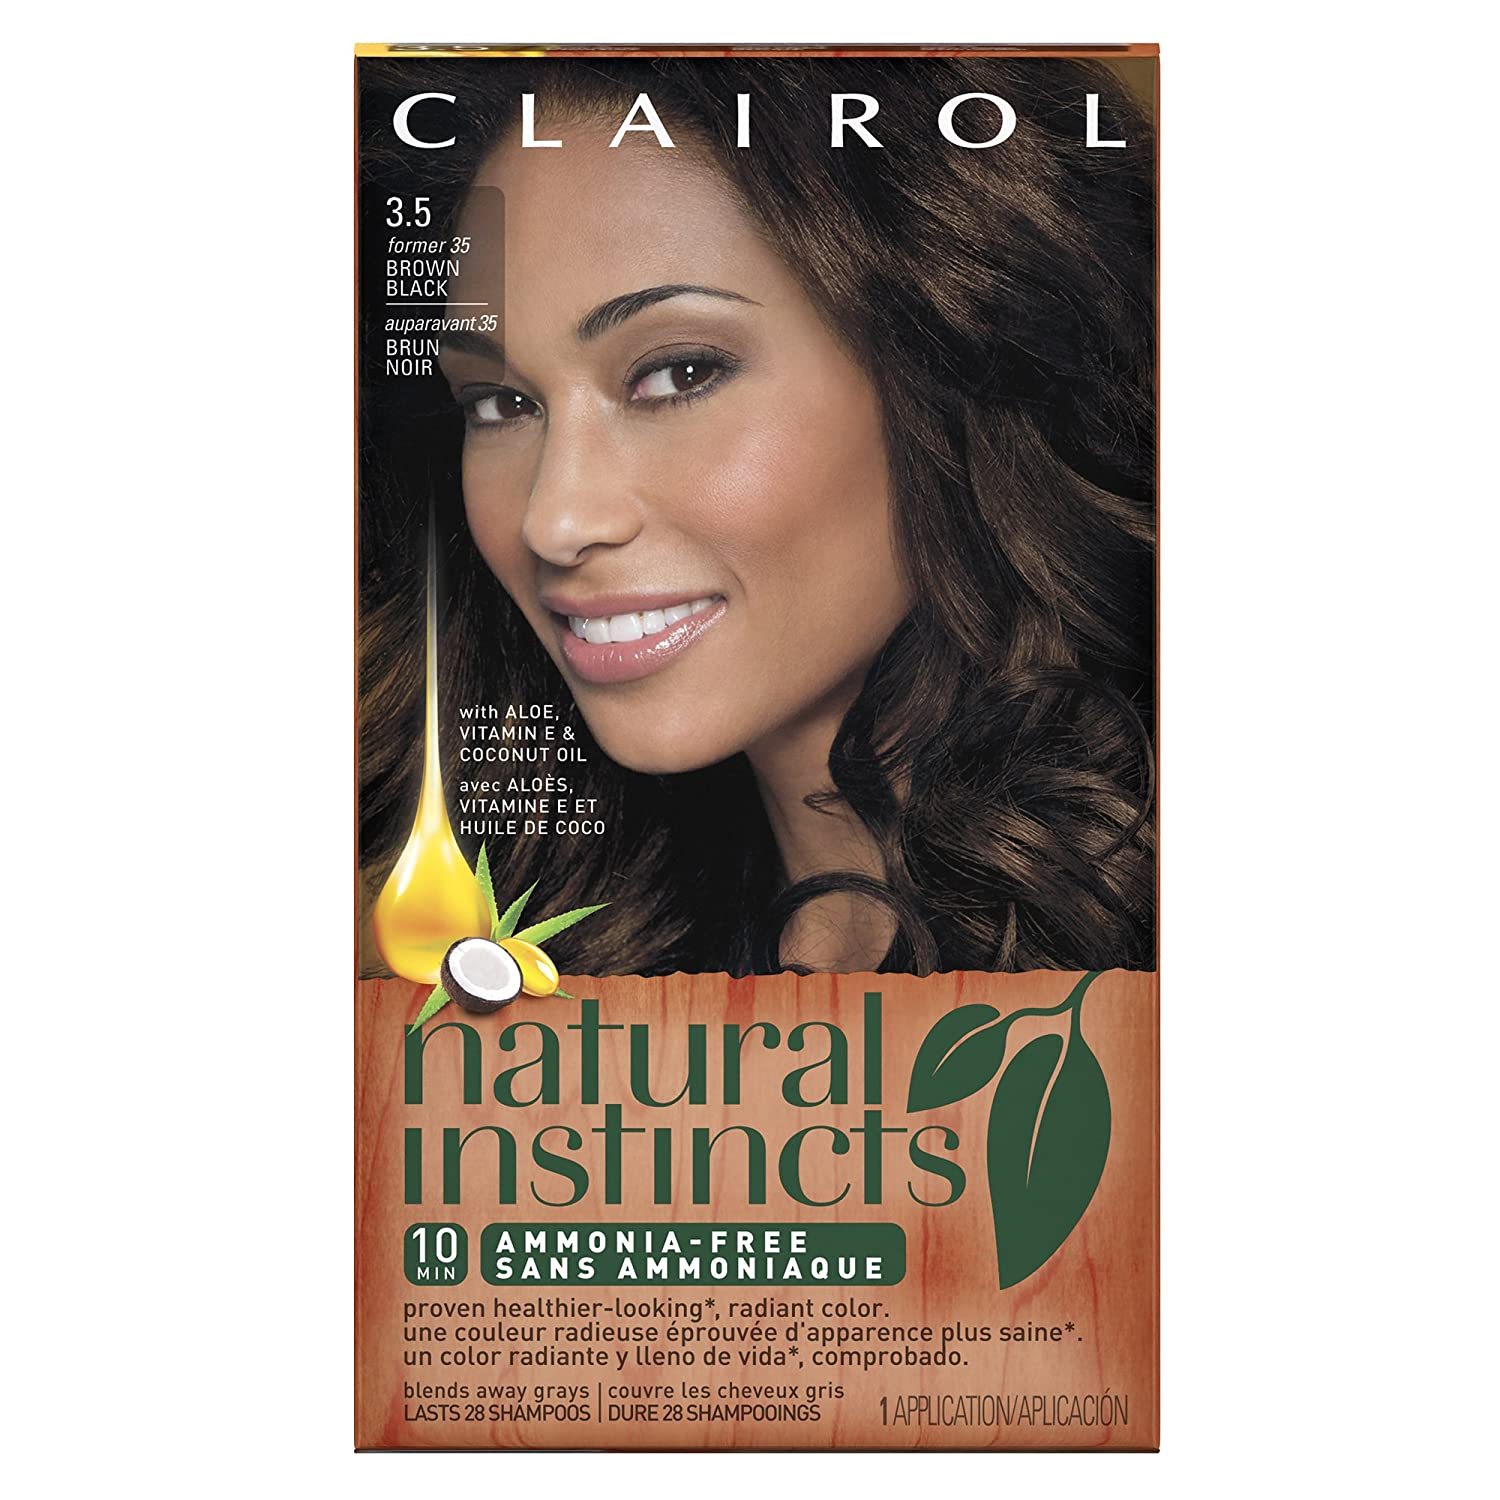 Amazon.com : Clairol Natural Instincts Haircolor 3.5 Brown Black 1 ...